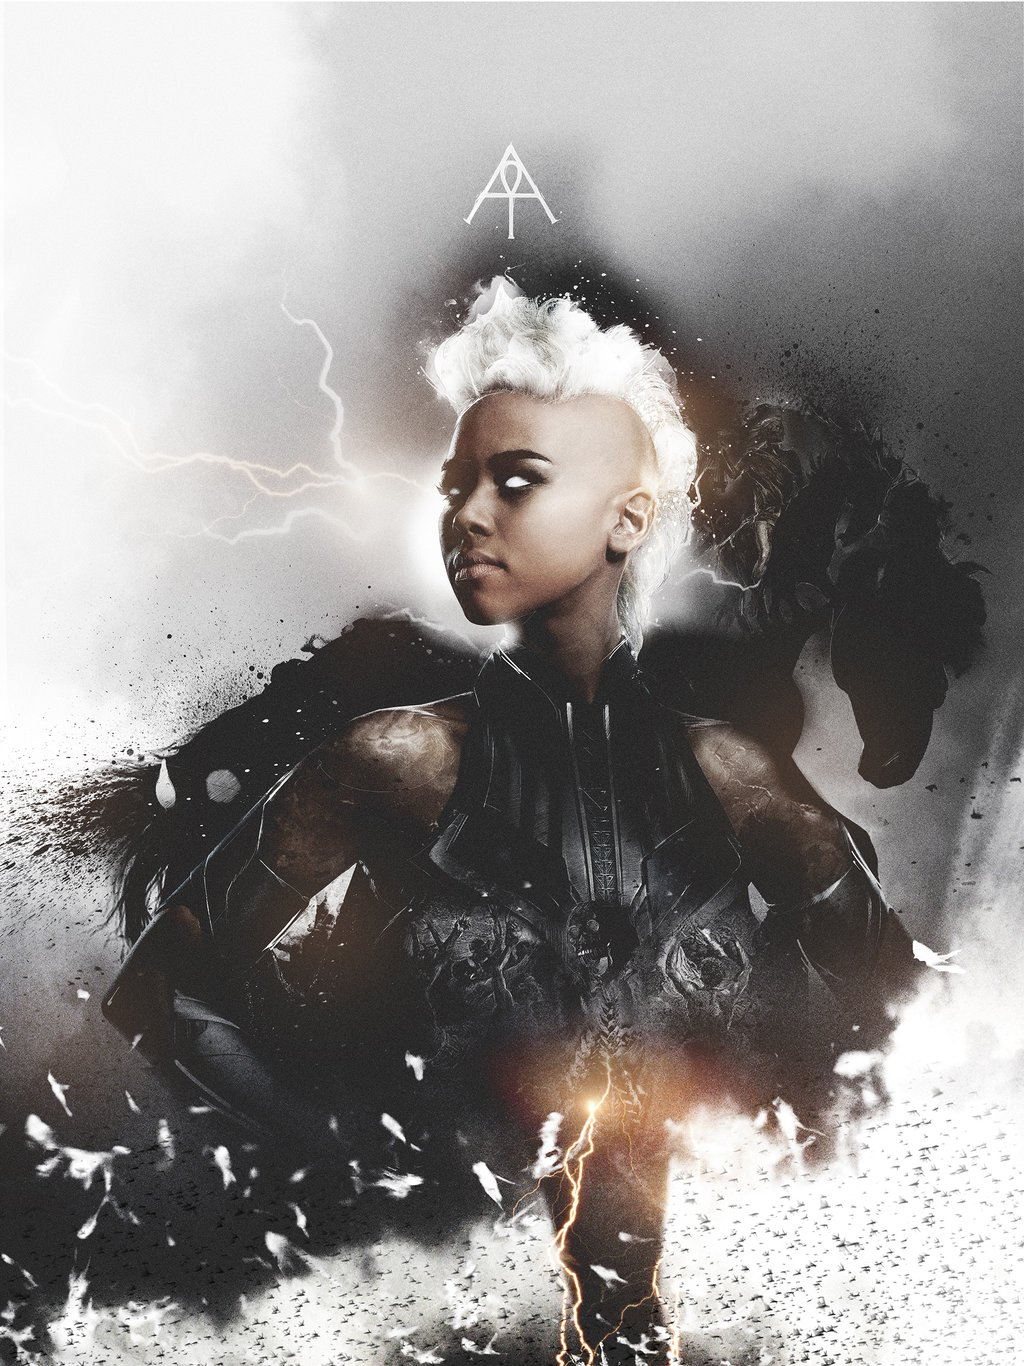 http://screenrant.com/wp-content/uploads/x-men-apocalypse-poster-storm.jpeg